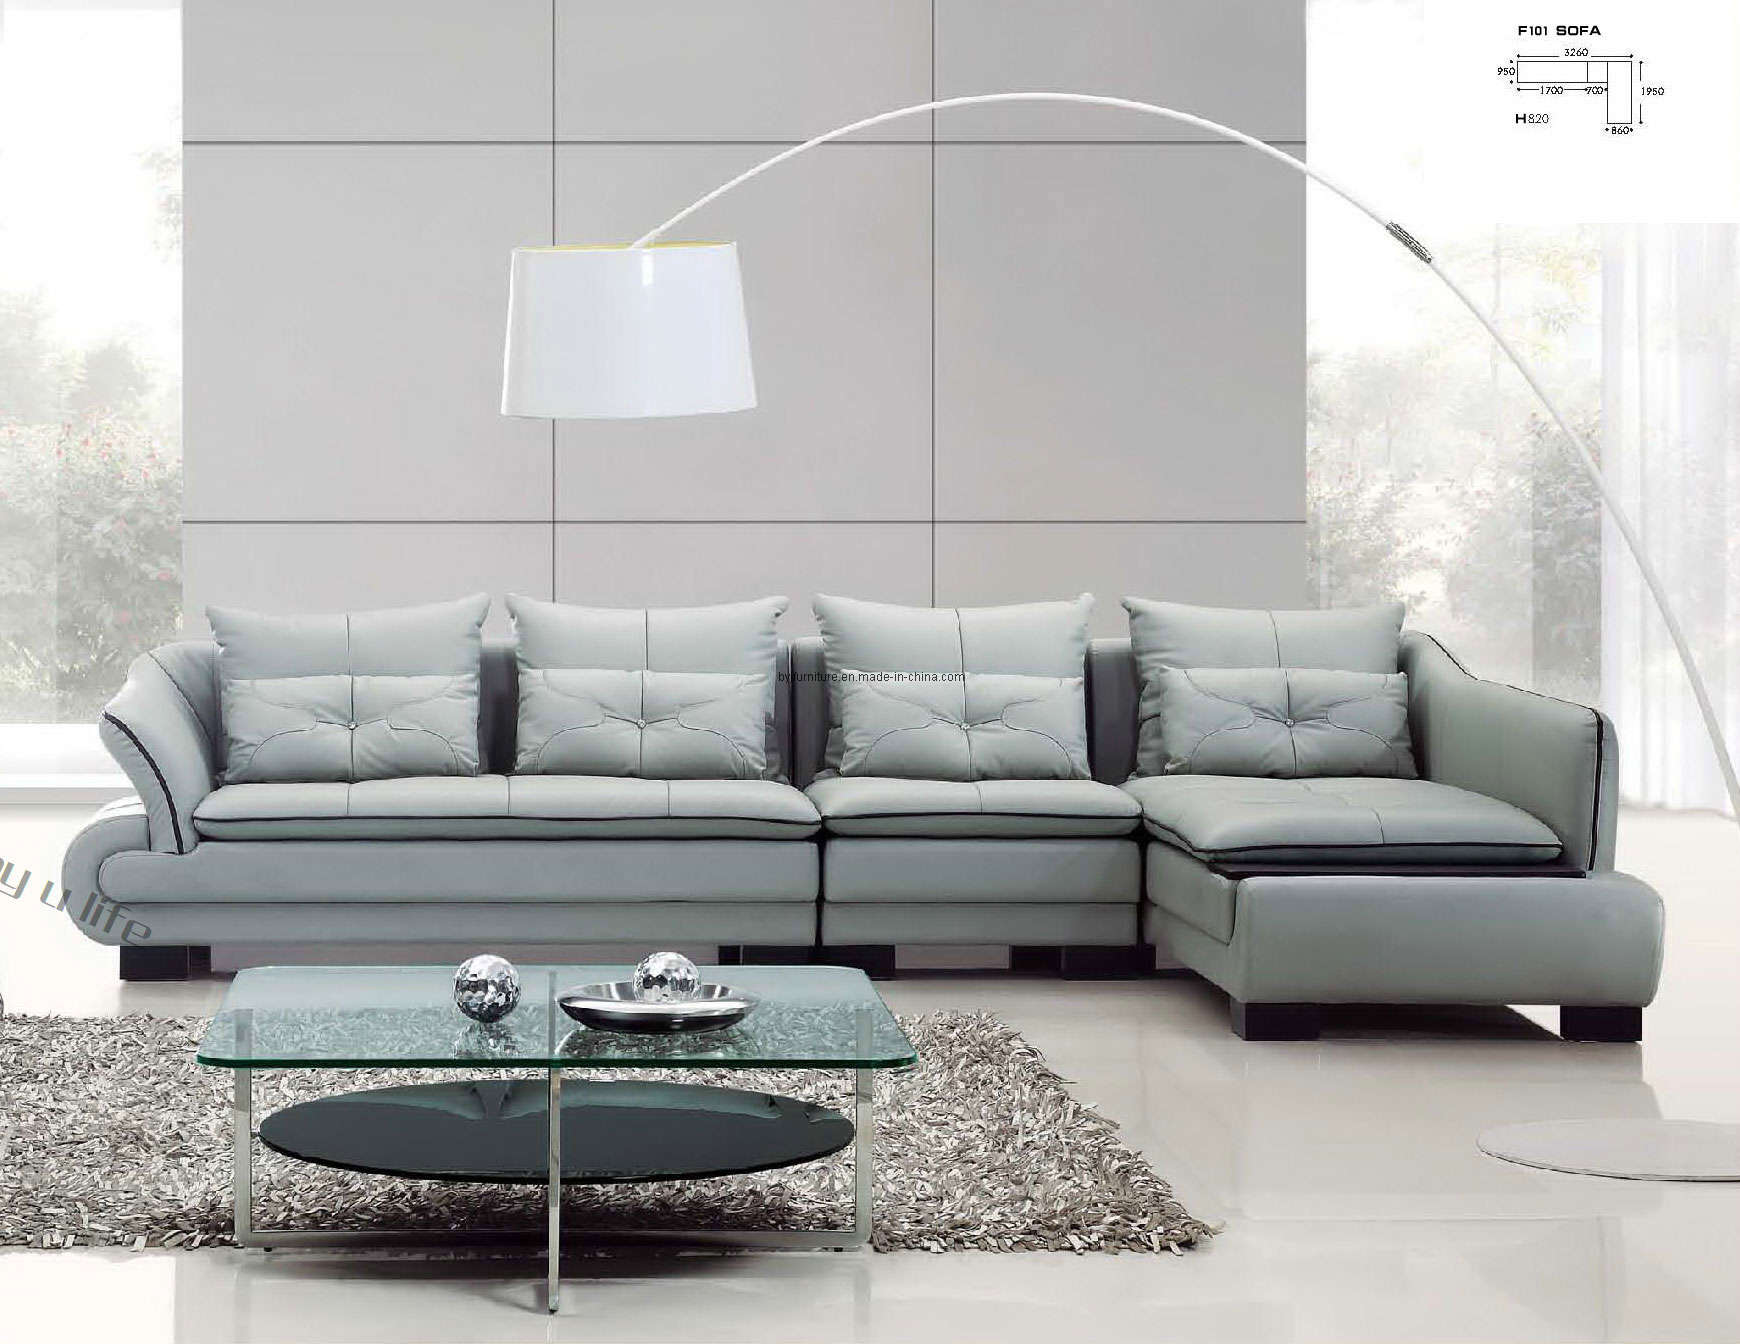 latest sofa set designs for living room furniture ideas  hgnvcom - view in gallery fresh idea contemporary leather sofa sets leather amazinginspiration contemporary sofa modern sofas a